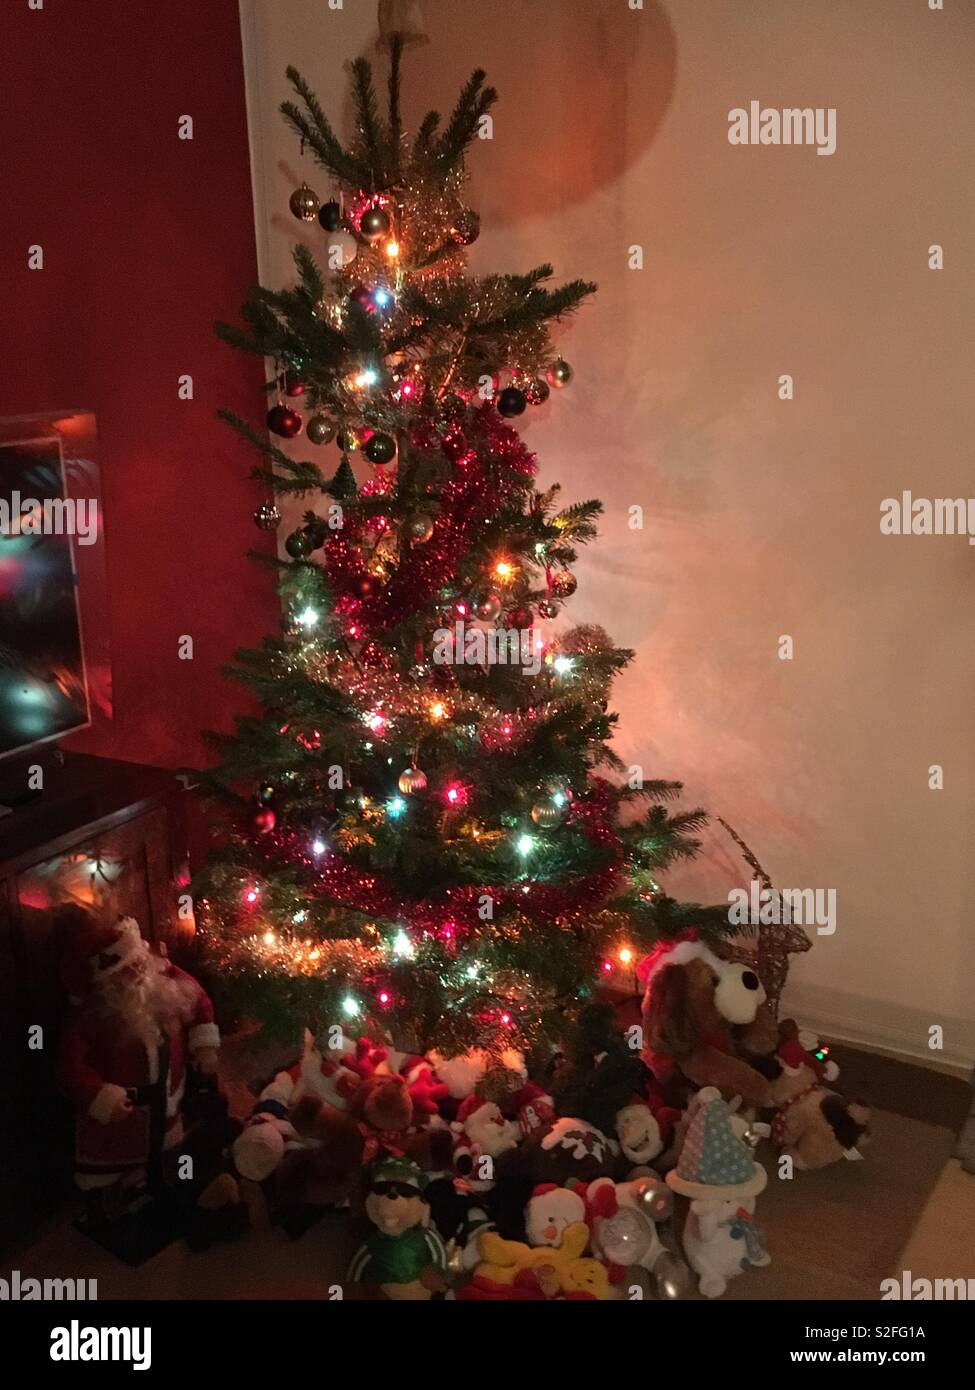 Christmas tree surrounded by novelty soft toys - Stock Image